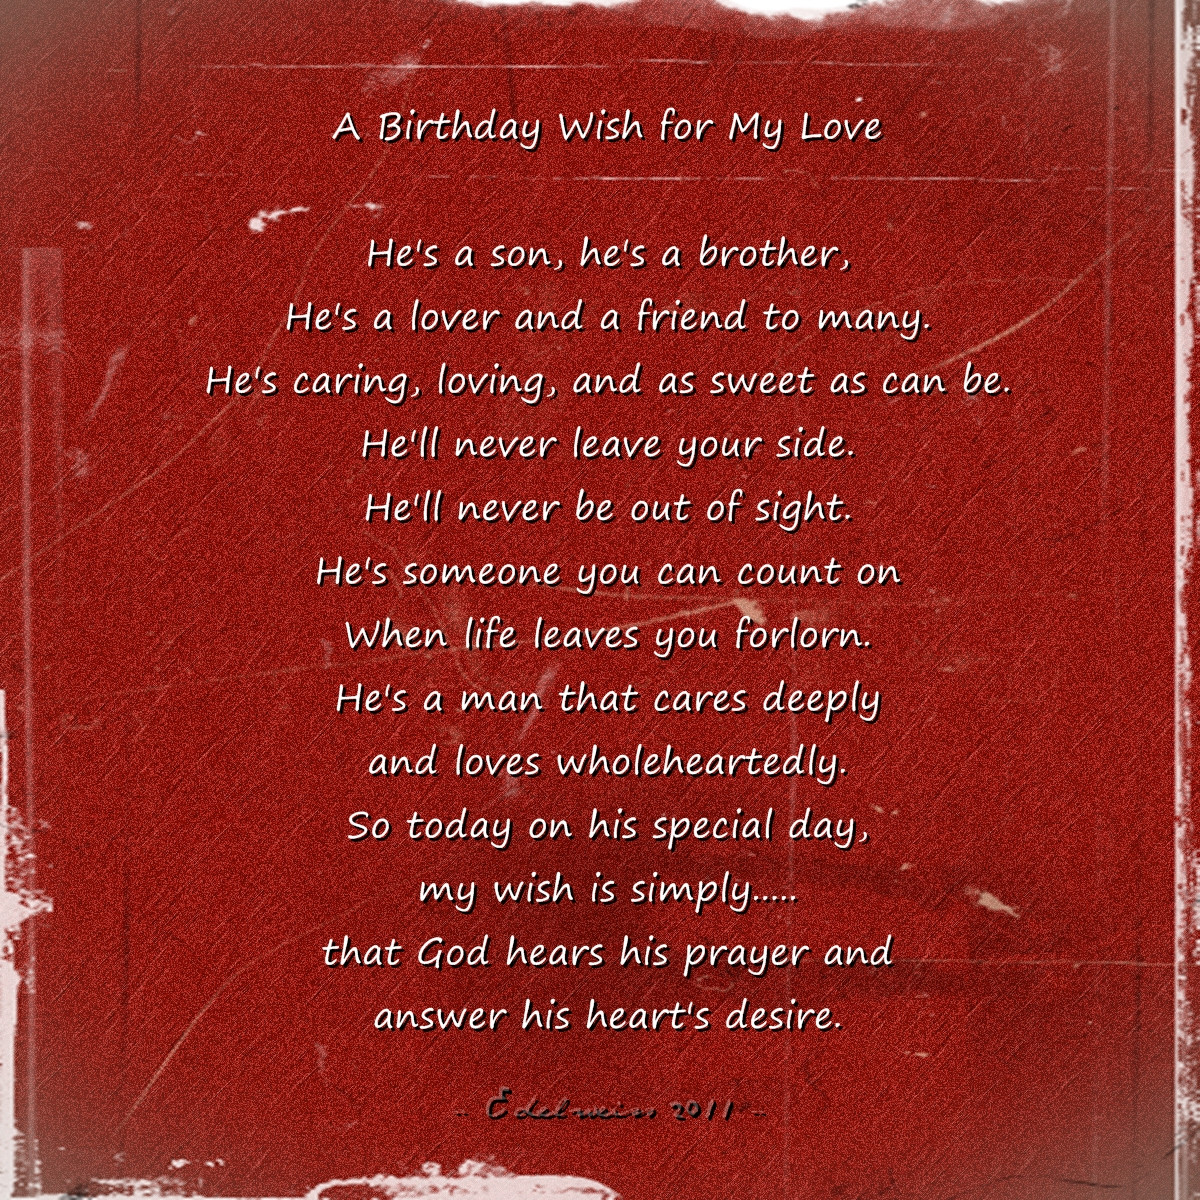 Best ideas about Happy Birthday My Love Quotes For Him . Save or Pin Birthday Quotes Love Now.